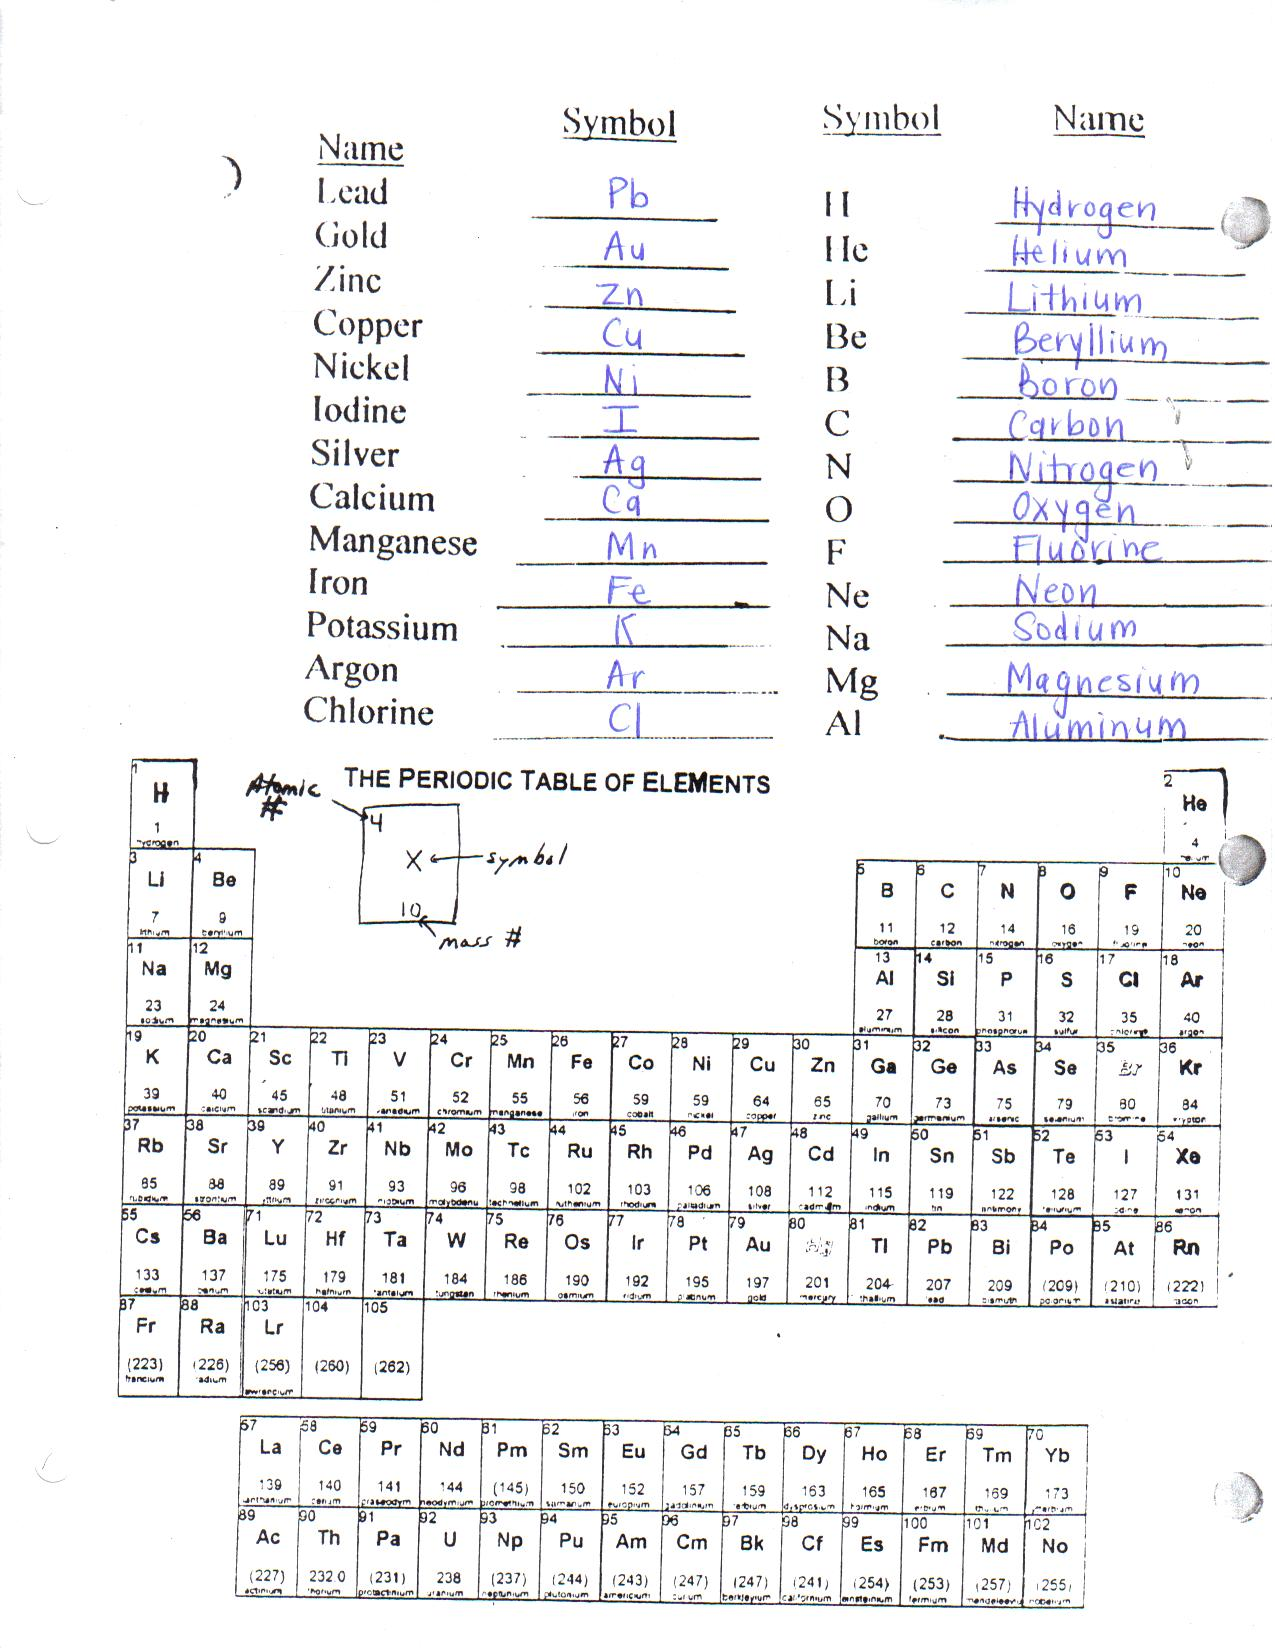 symbol name practice 1 2 - Periodic Table Of Elements Quiz 1 10